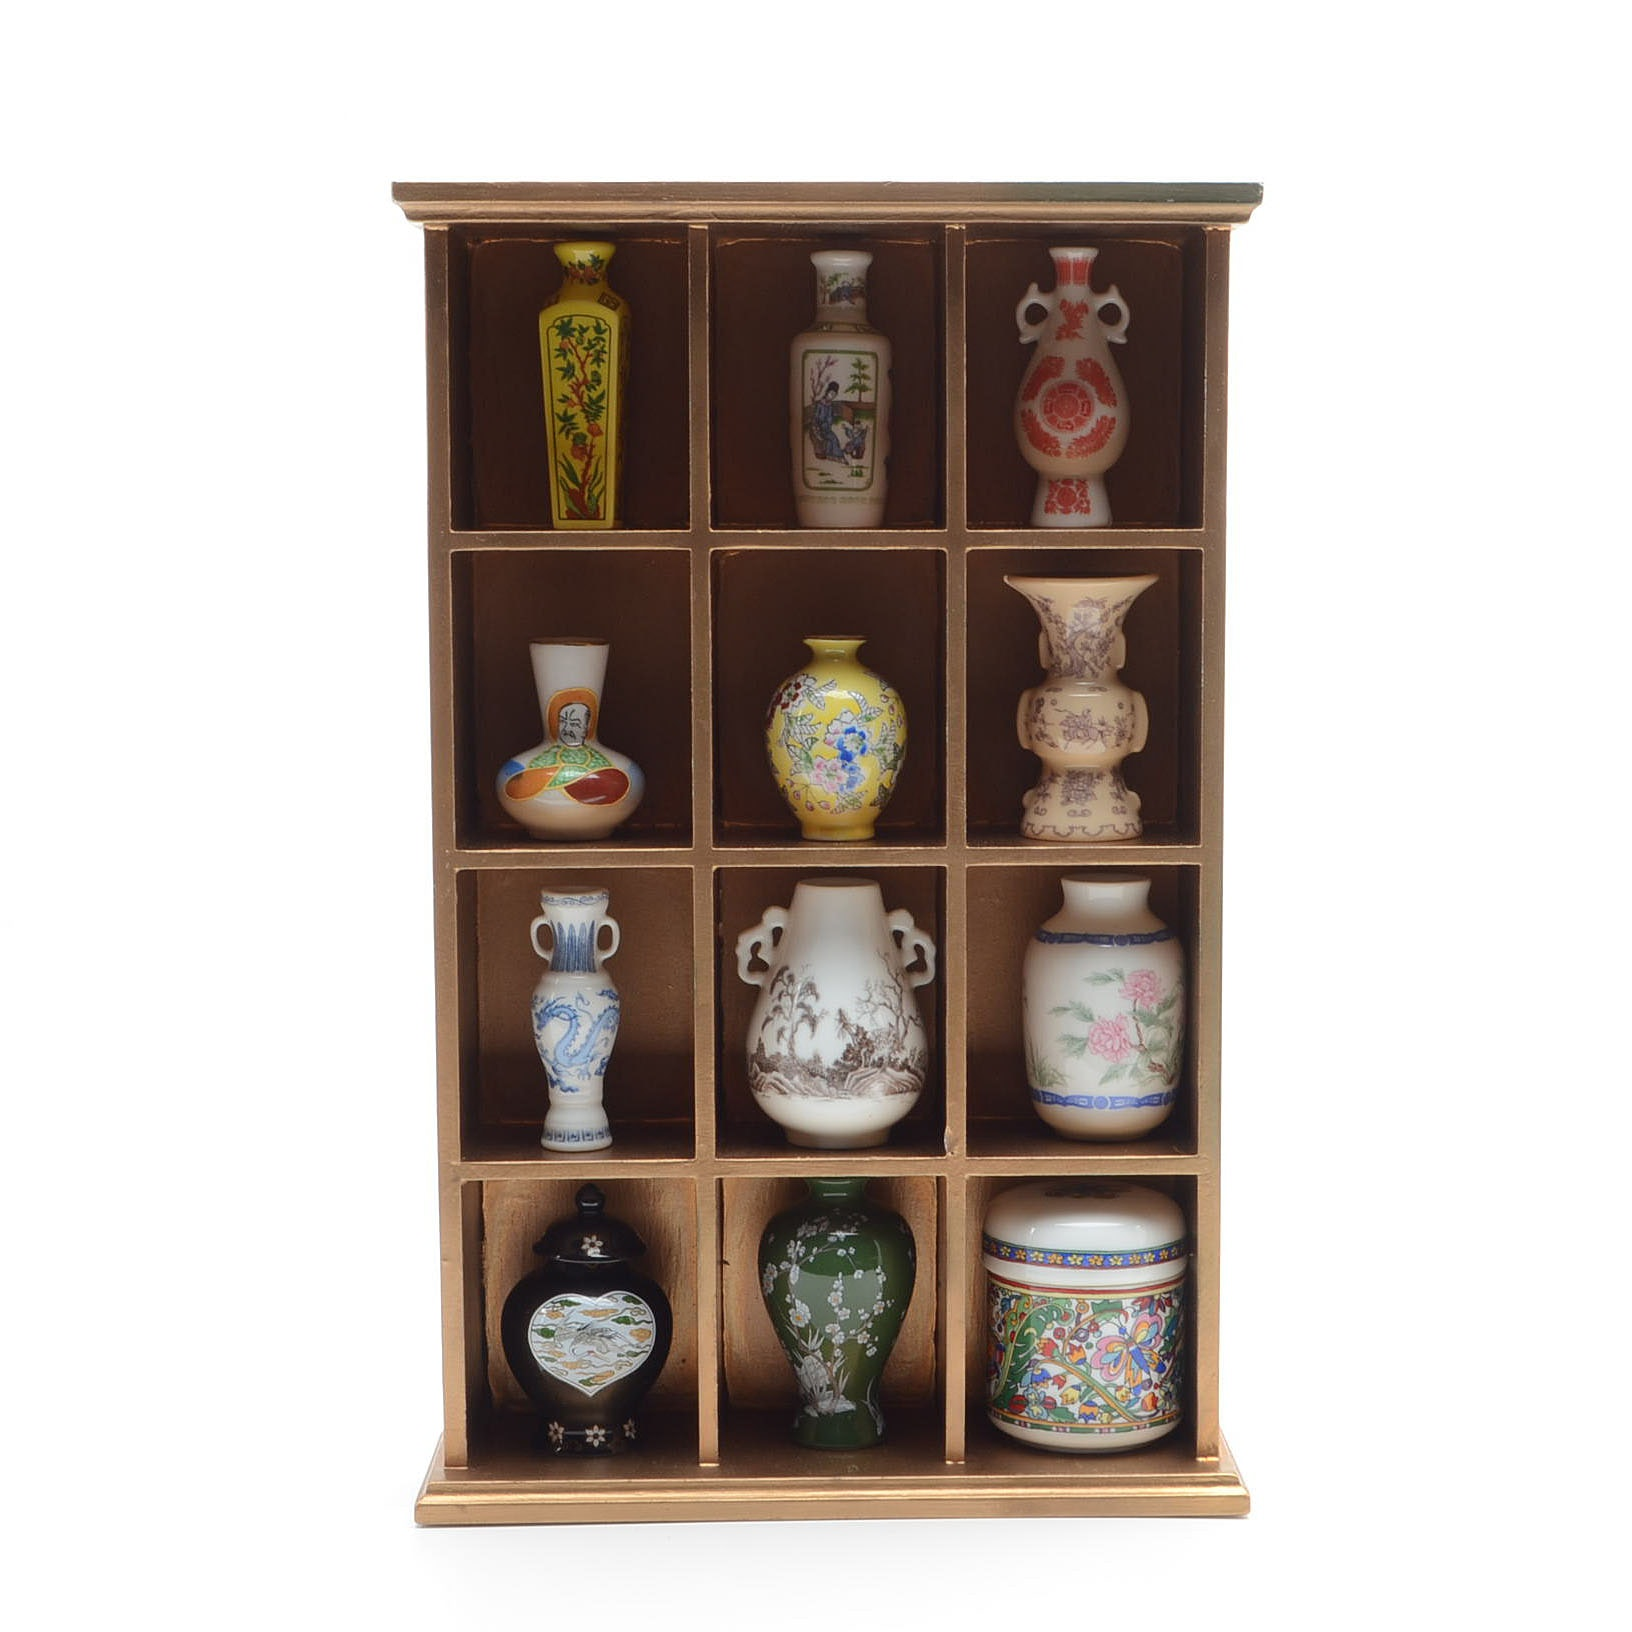 East Asian Porcelain Bud Vases with Cabinet